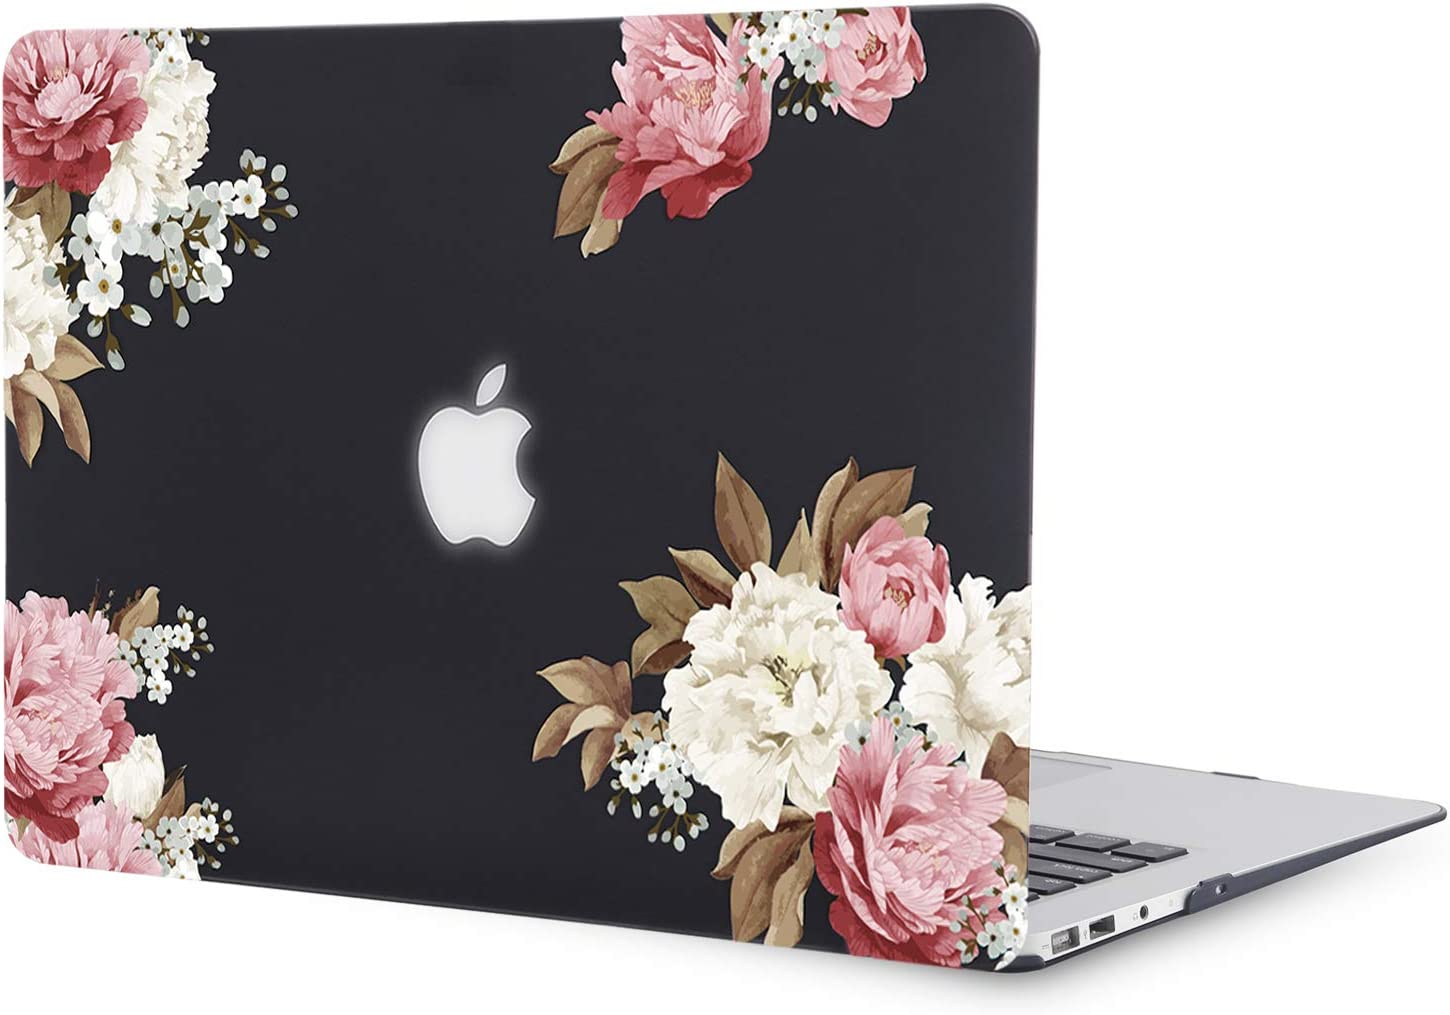 iDonzon MacBook Air 13 inch Case (Model: A1466 & A1369, 2010-2017 Release), 3D Effect Matte Black See Through Hard Cover Only Compatible Mac Air 13.3 inch - Peony Black Base